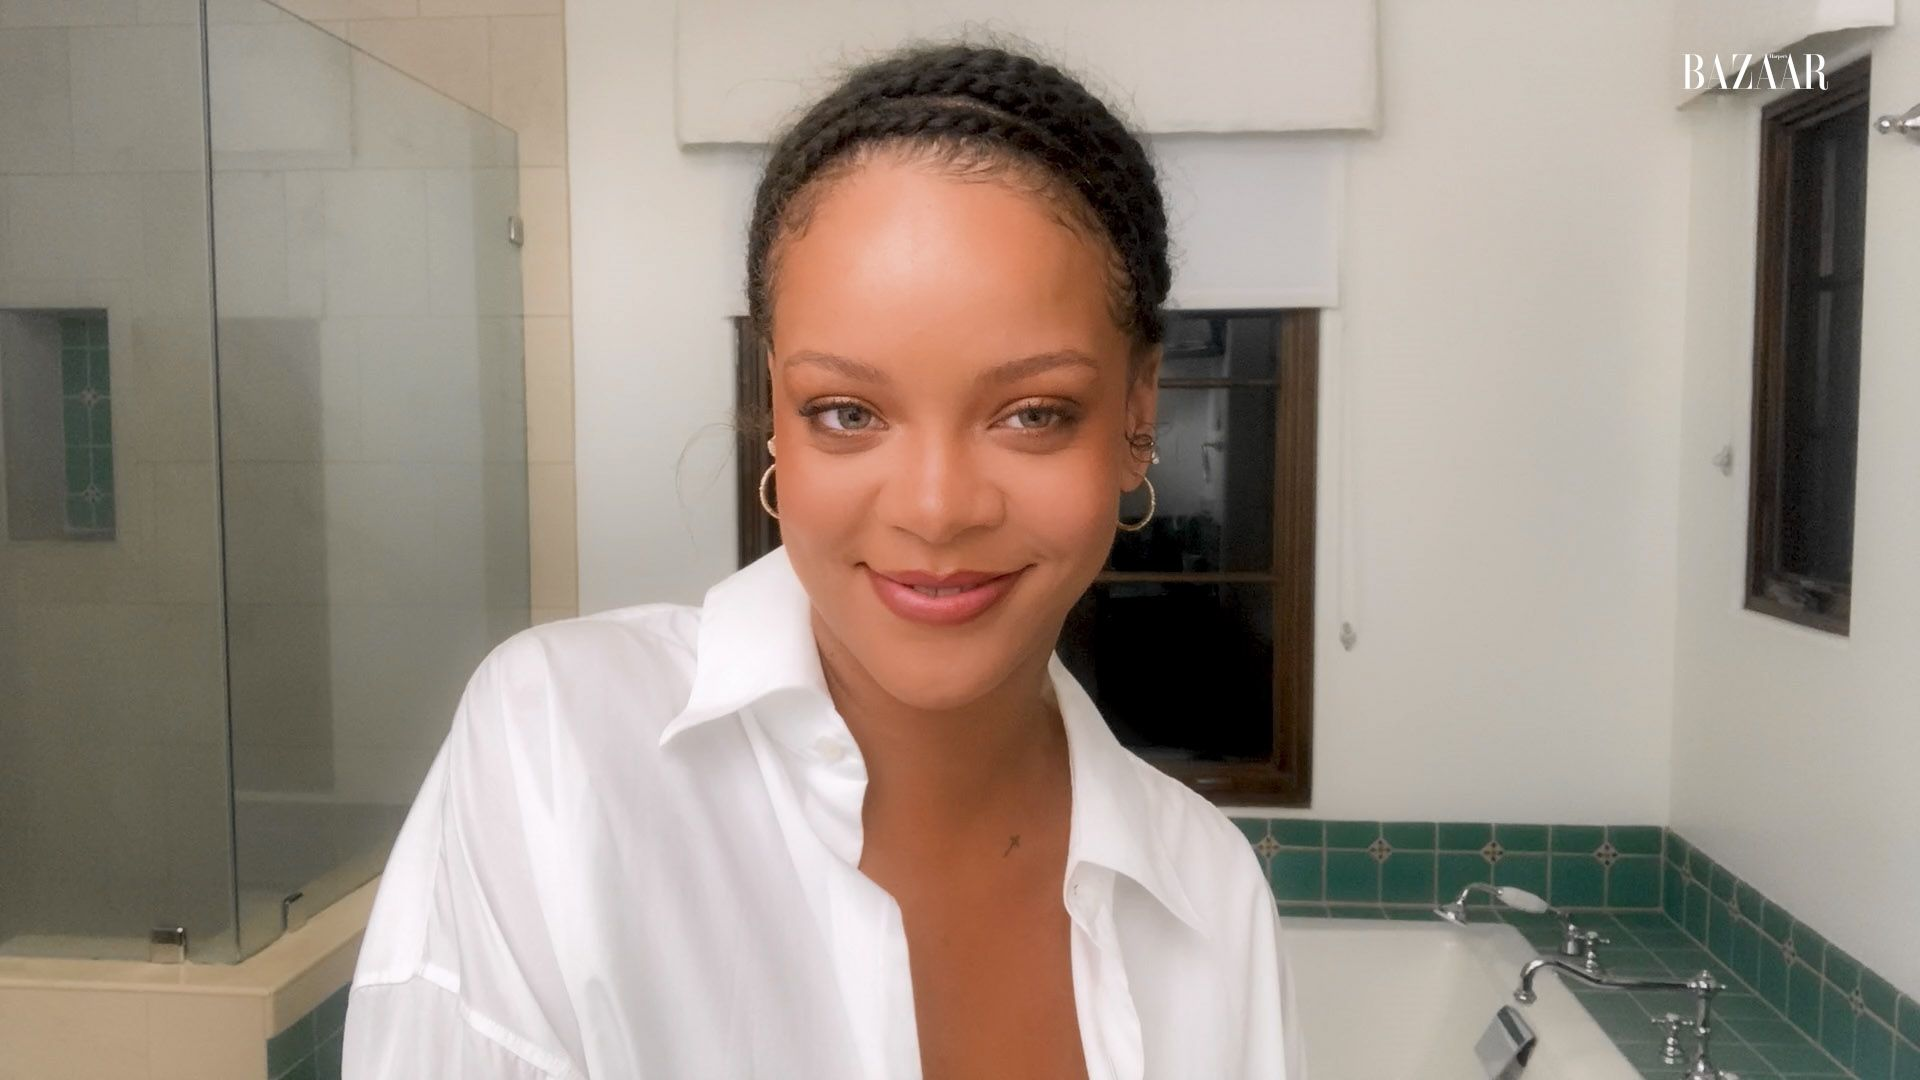 Rihanna Is Officially a Billionaire and the Wealthiest Female Musician in the World